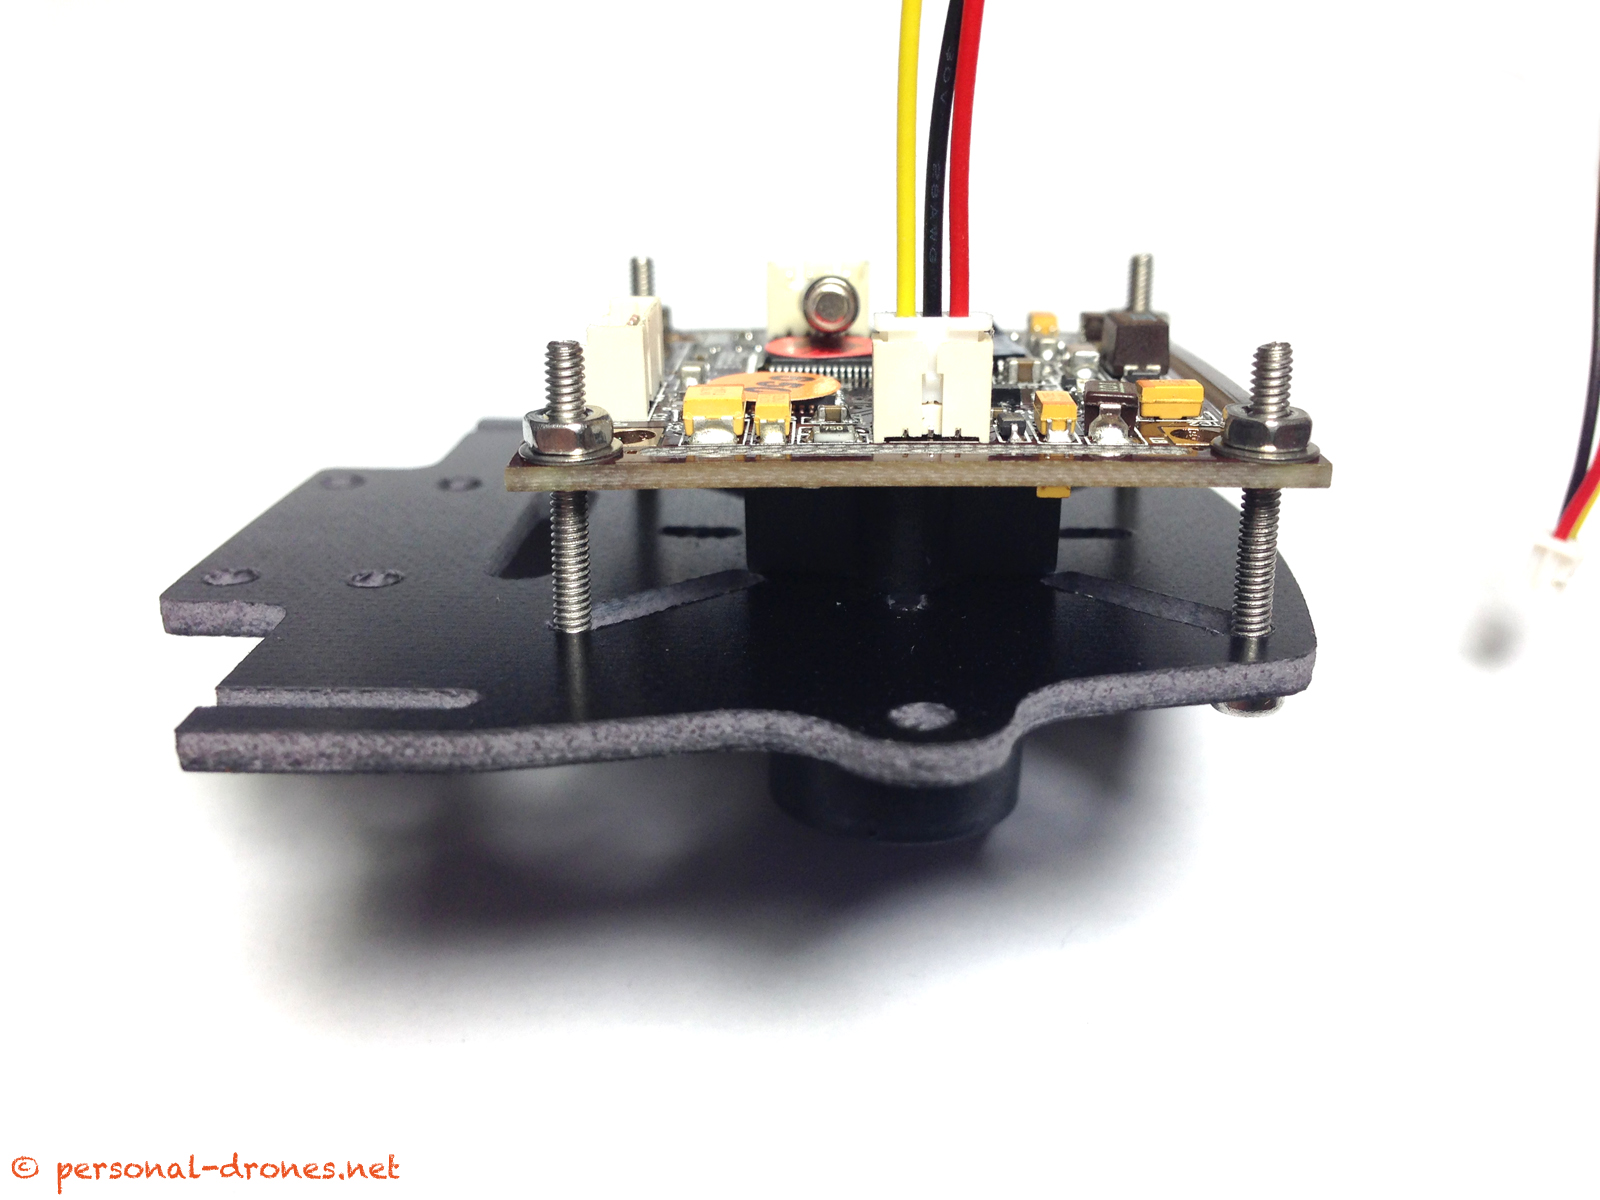 CCD camera on FlyXcoper camera mount